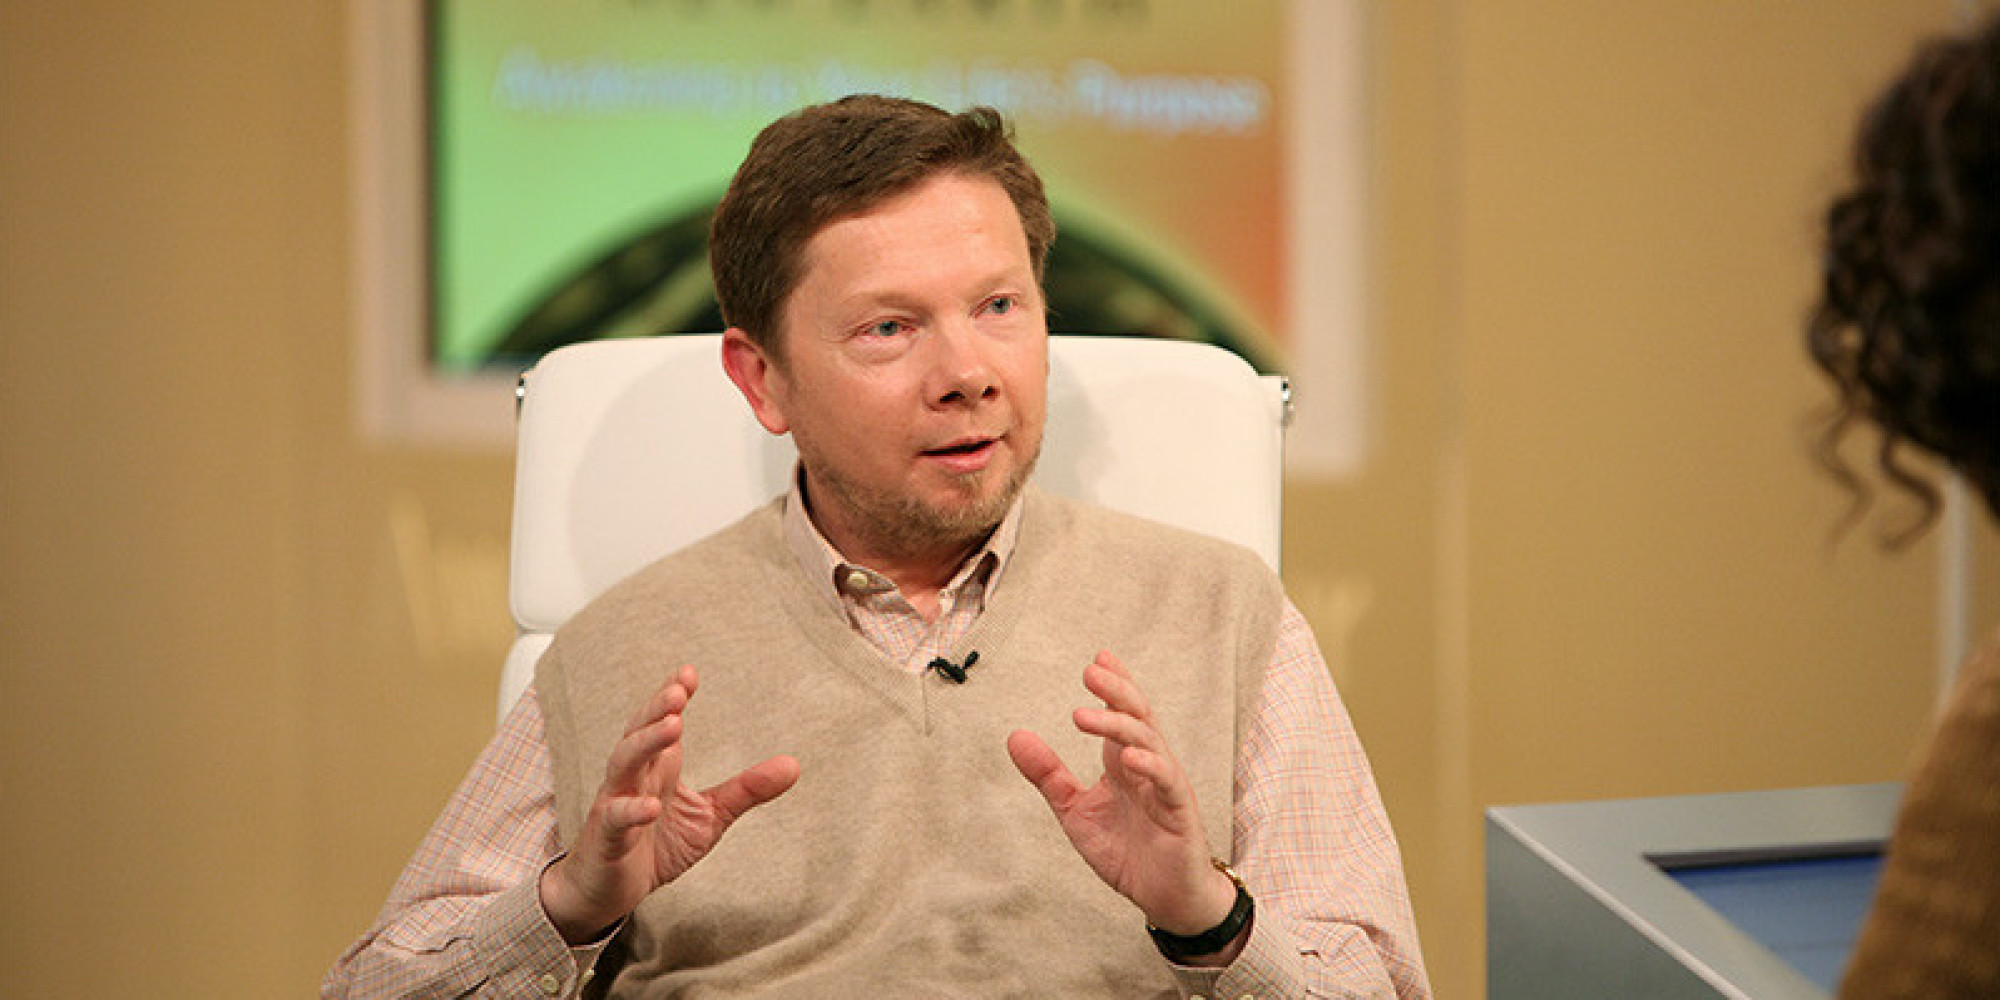 Eckhart Tolle Describes Two Simple Exercises To Help You ...